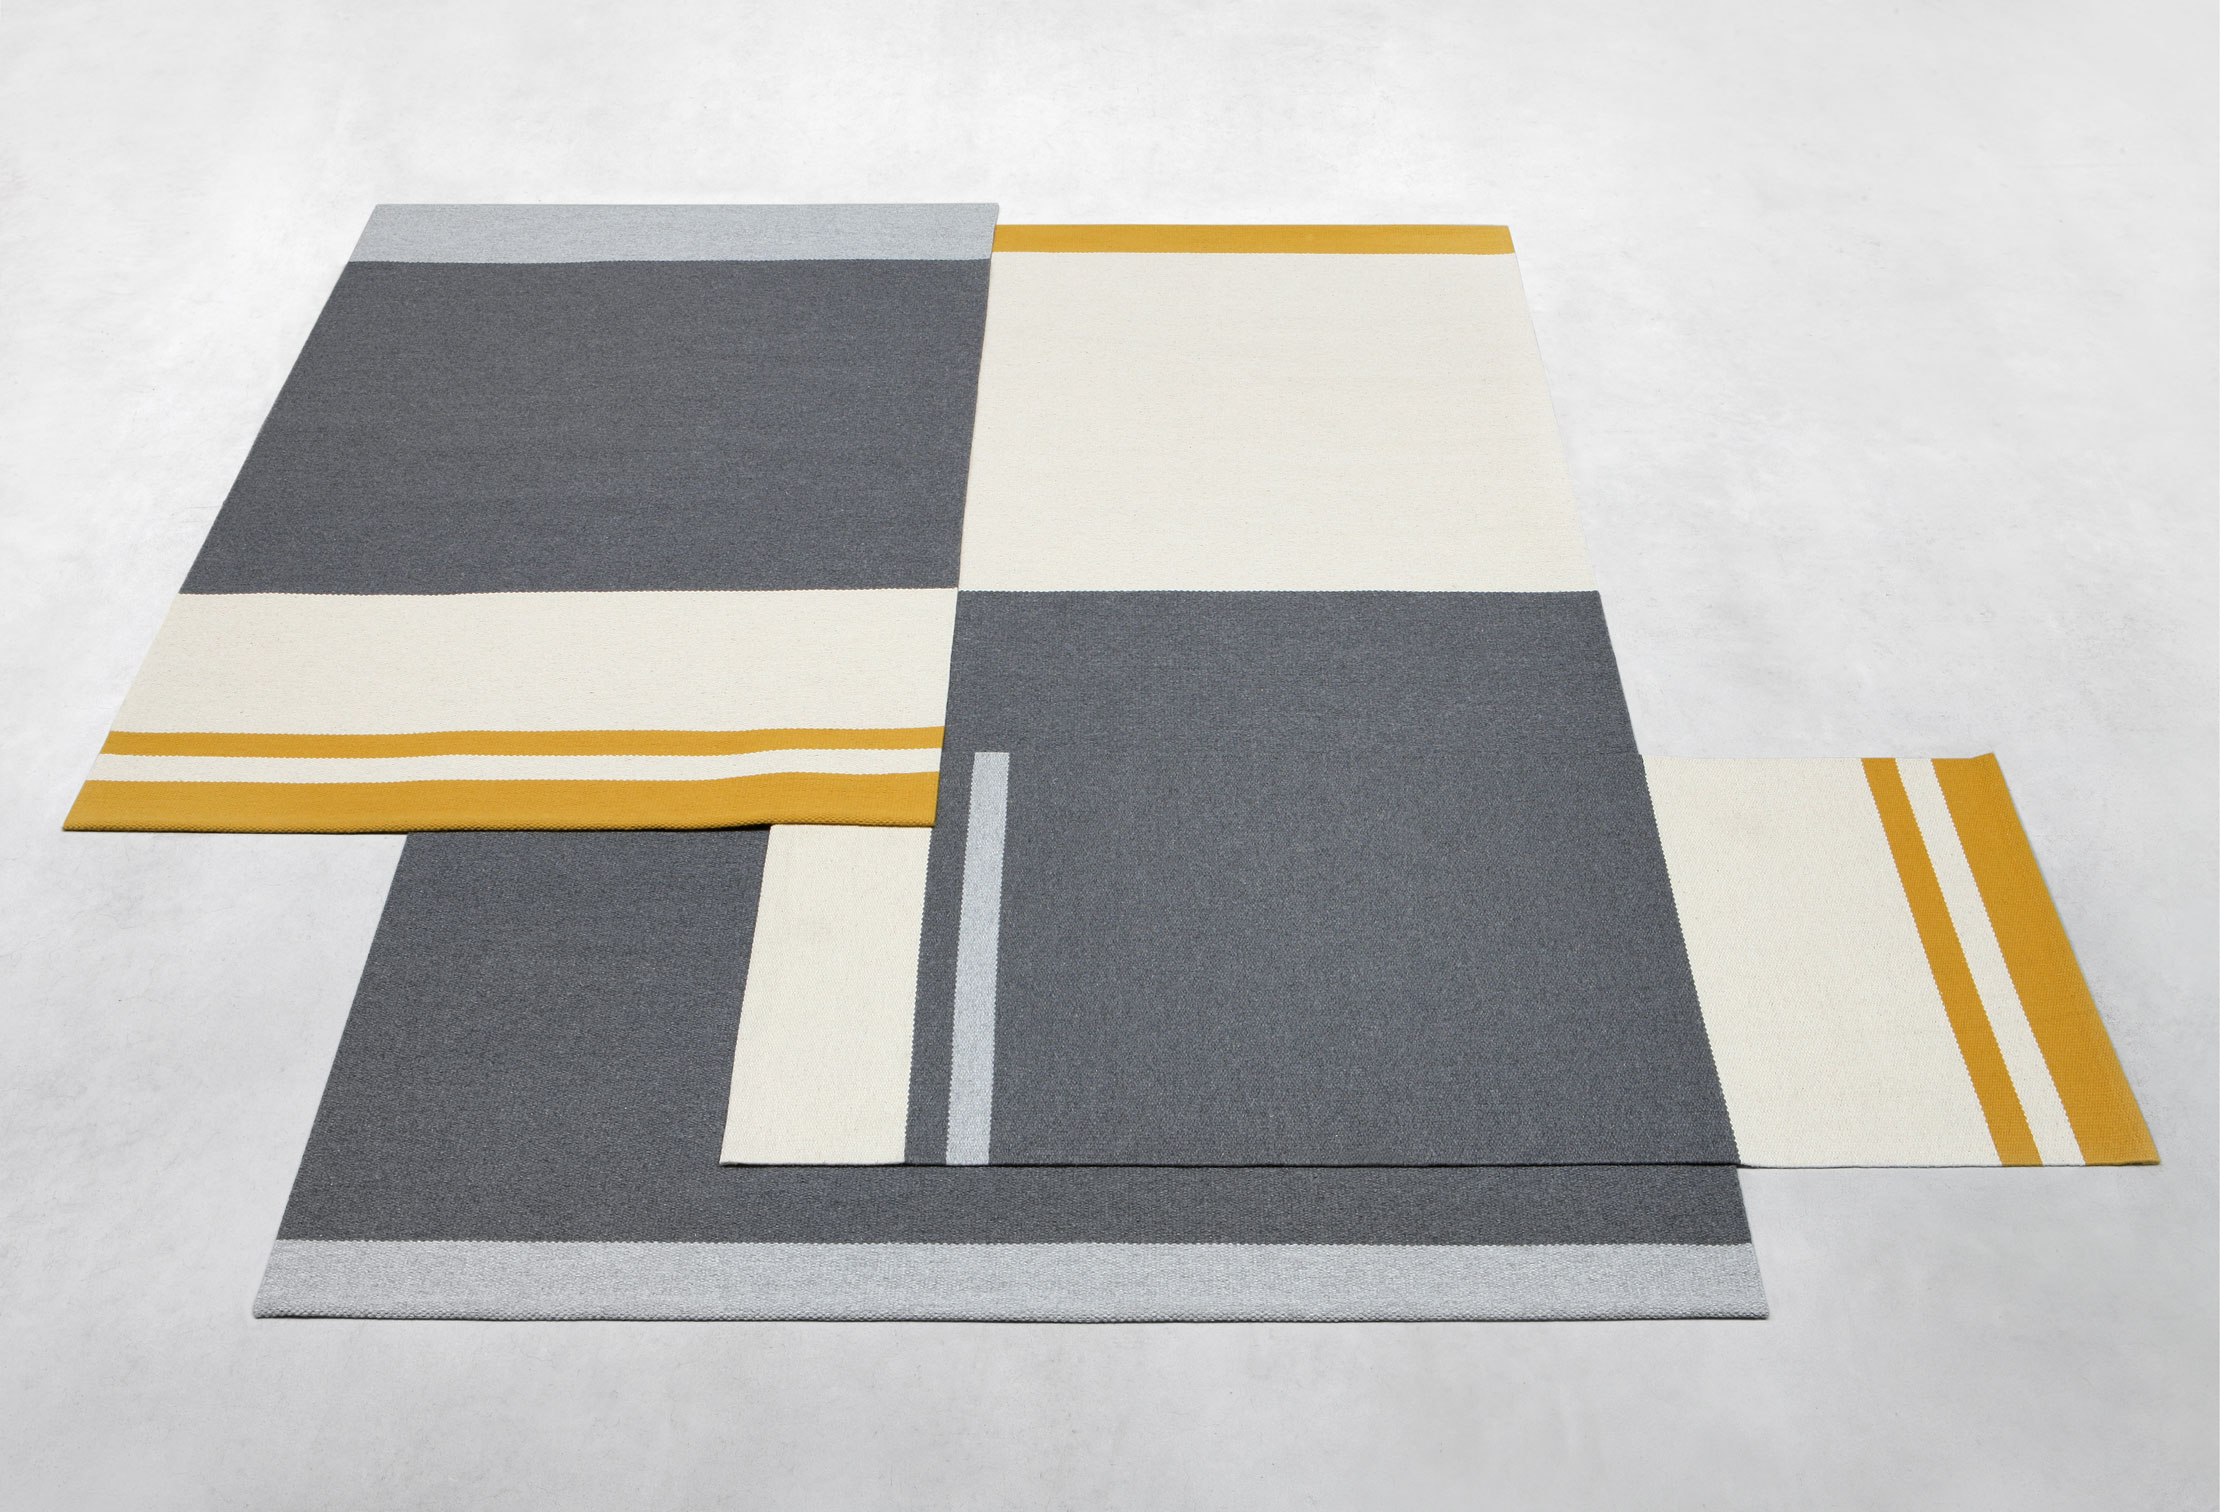 Fran Medium Rug - <p>The Alfred Collection consists of five series (Fran, Frenzy, Lucy, Ivy, Billie) of handwoven minimalist carpets made by Belgian textile designers Marie Mees and Athérine Biasino. Firstly, all carpets are handwoven with a mixture of two top-shelf wools from New Zealand and Portugal, the first offering the right softness and look, the other adding strength. Secondly, the designers envision a minimalist aesthetic that resonates timelessness and not trendiness. In fact, hyped colours are fiercely avoided. By offering highly durable and supremely sober carpets, the Alfred Collection honours the archetype of the carpet, pure in form and in function, making it the perfect textile for the minimalist interior of the design admirer. Composition of the carpet is a mixture of Merino, New Zealand and Beira Alta (Portuguese wool).</p>  | Matter of Stuff